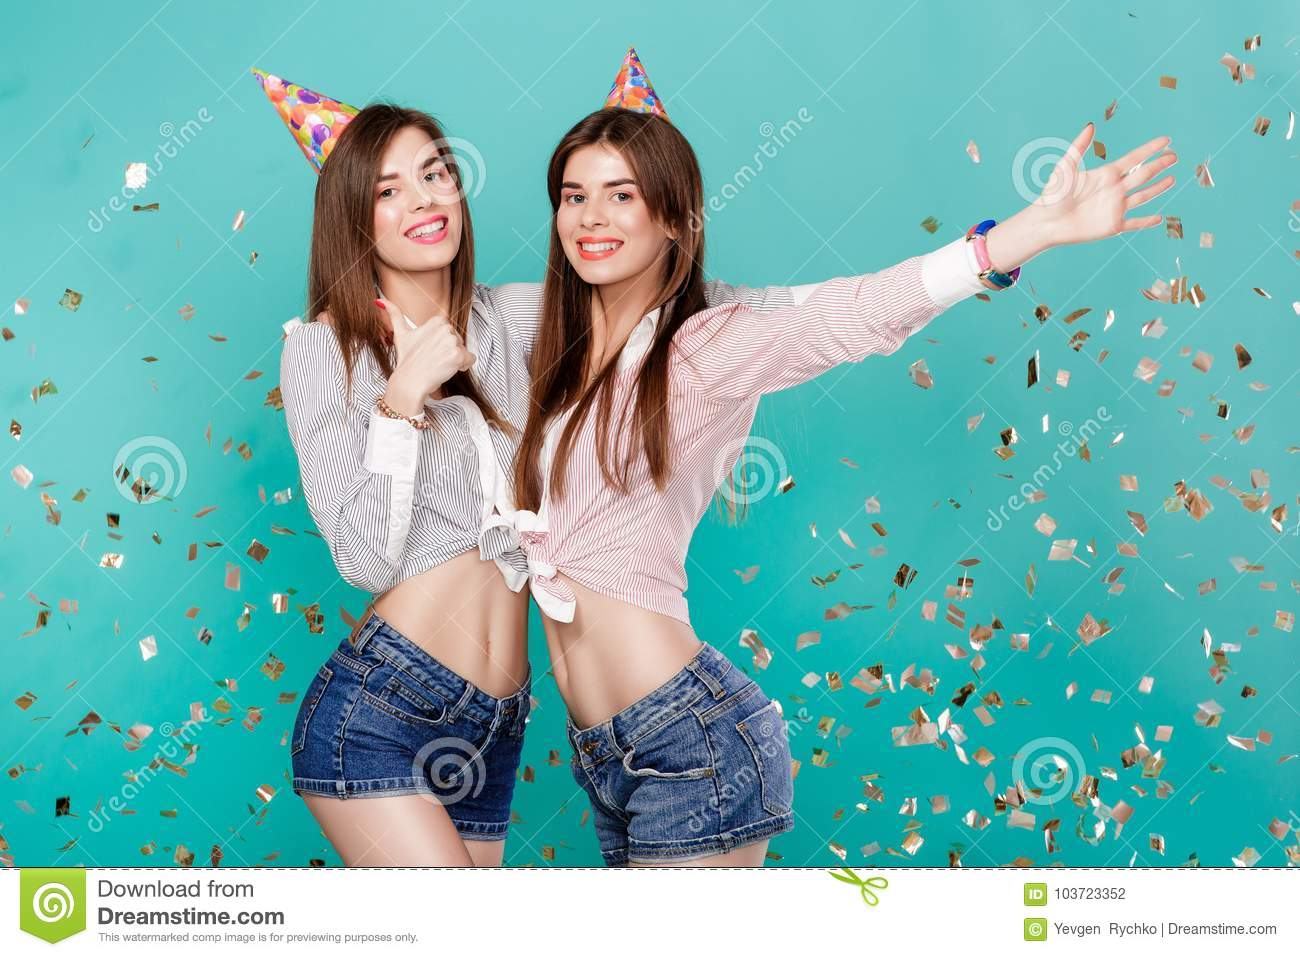 Women in birthday hat and confetti on blue background.